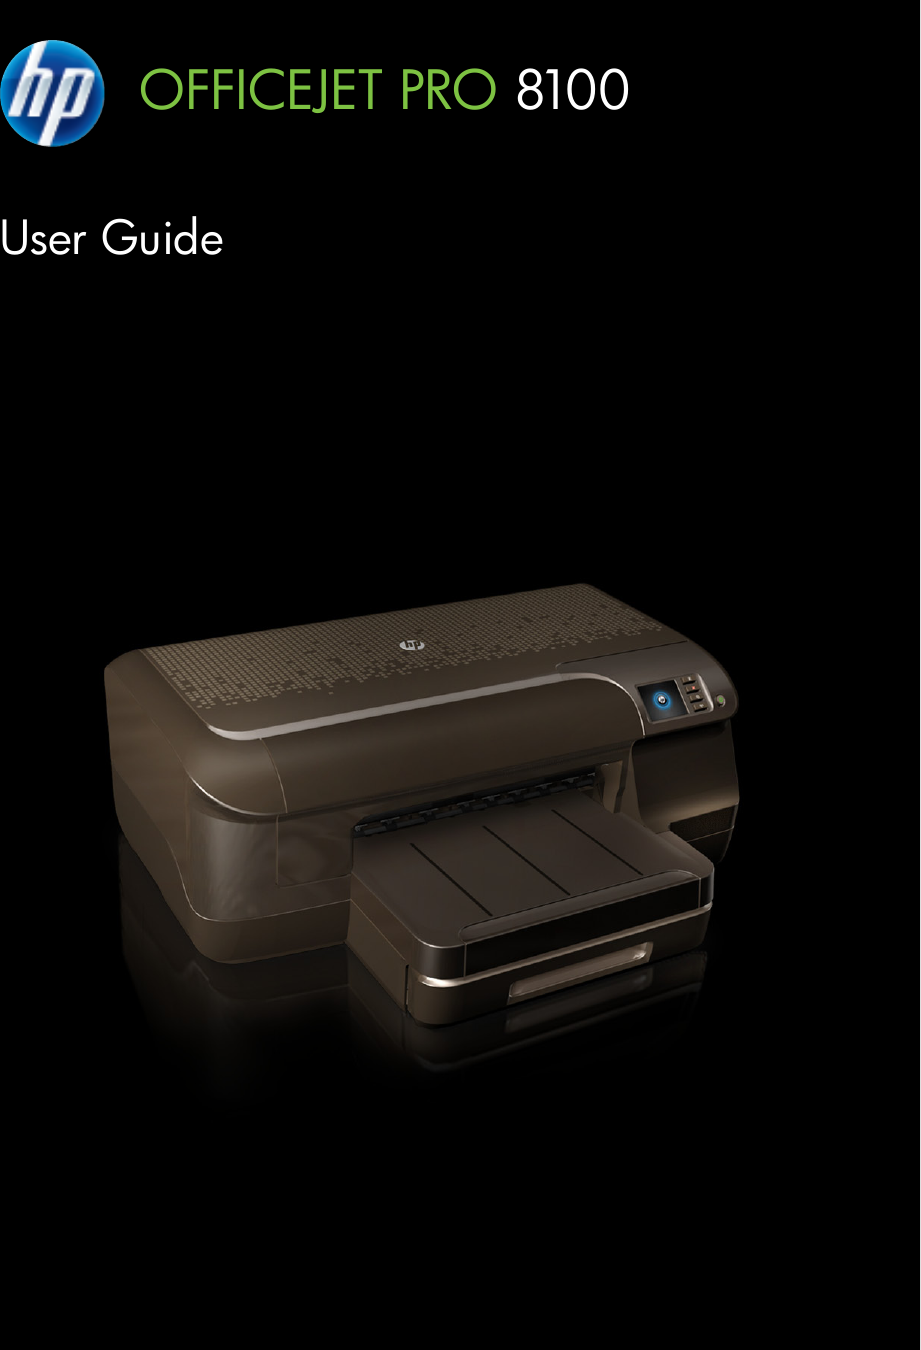 hp officejet pro 8100 manual